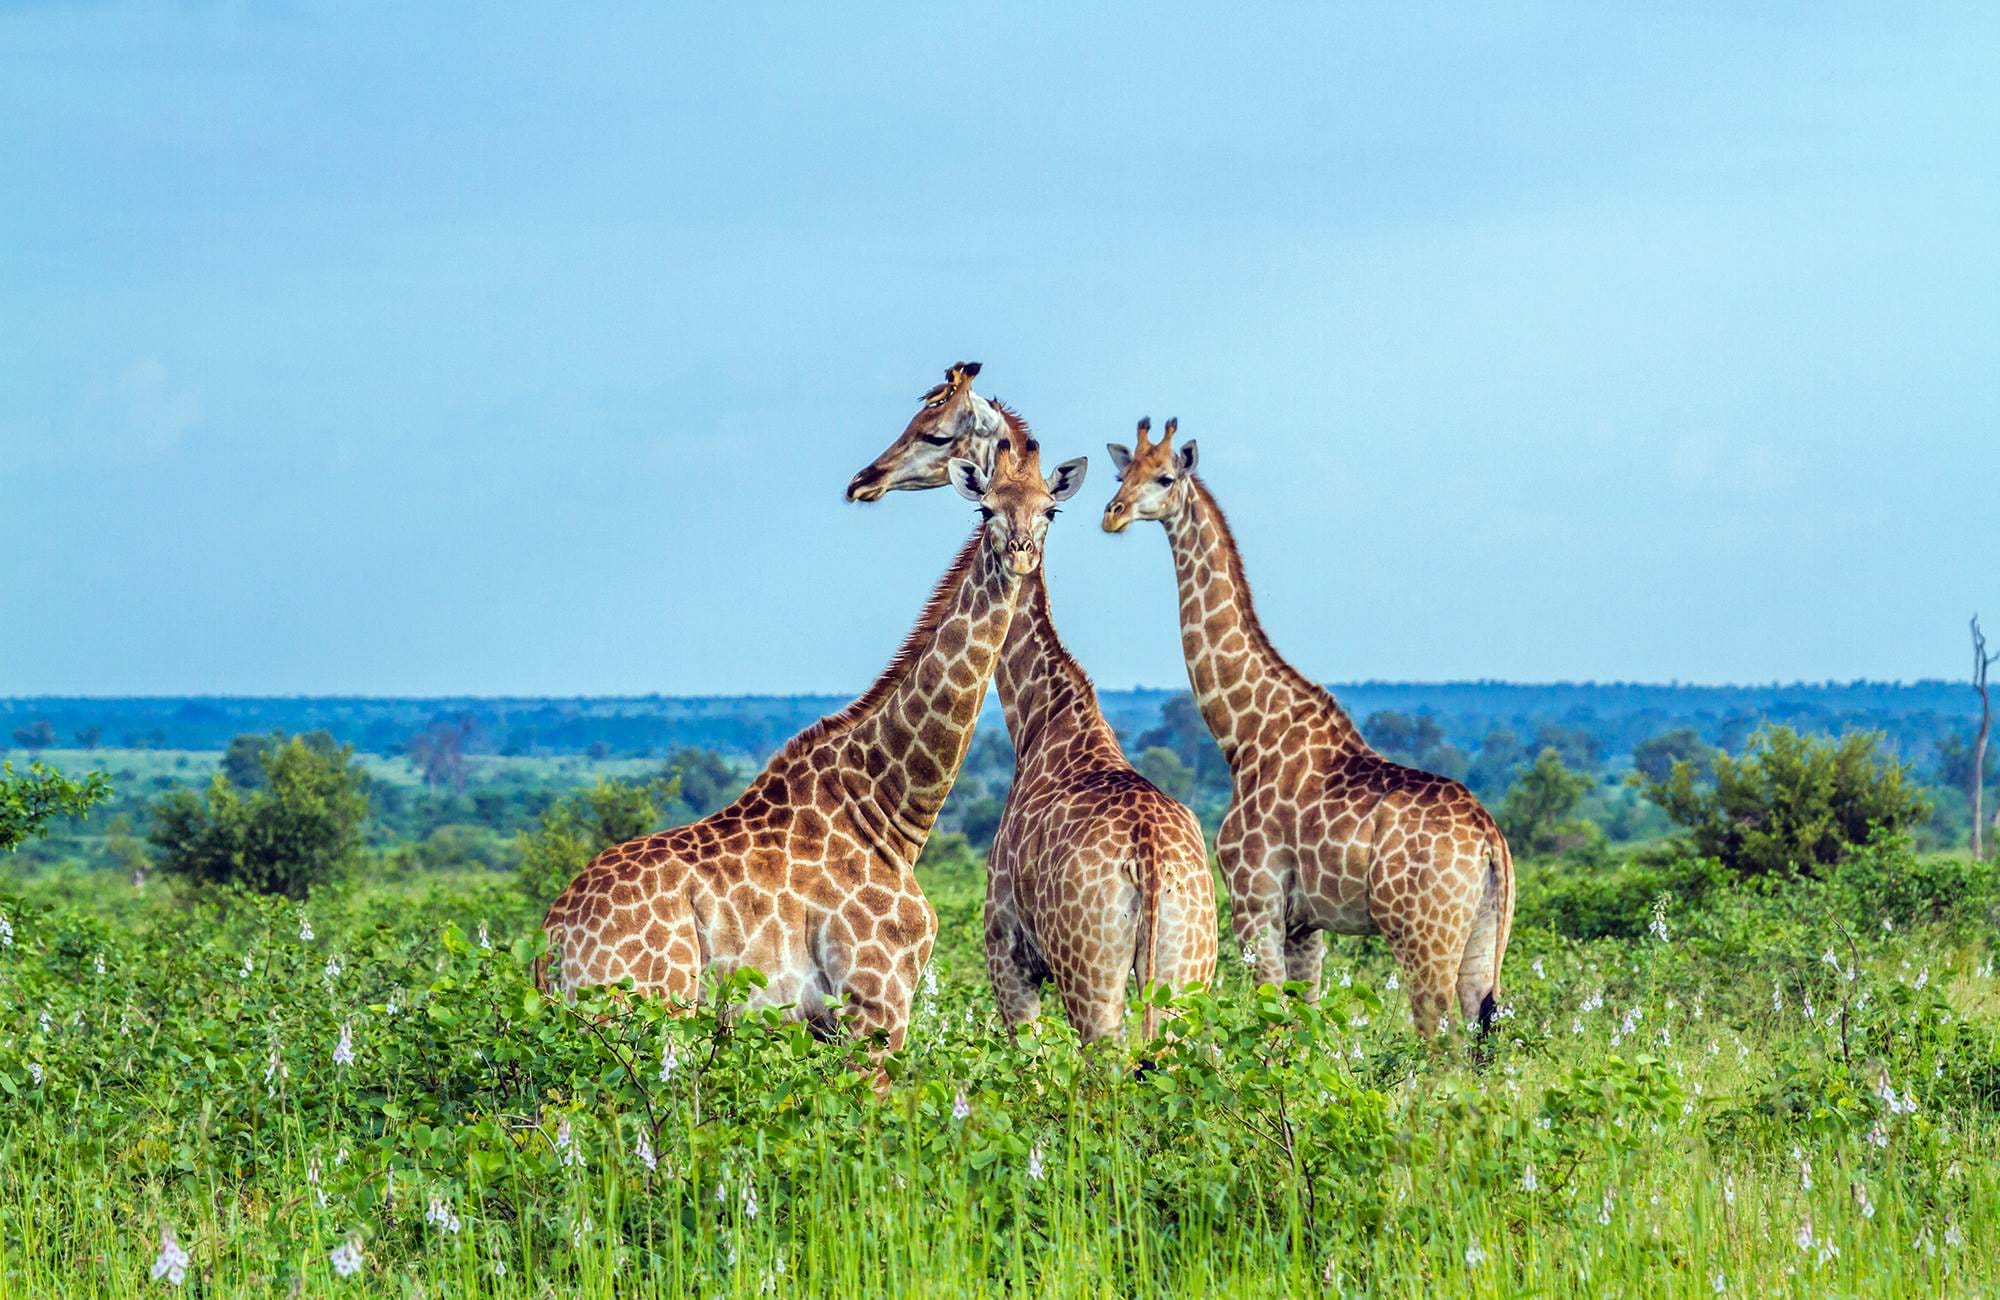 kruger-national-park-giraffes-amid-greenery-cover